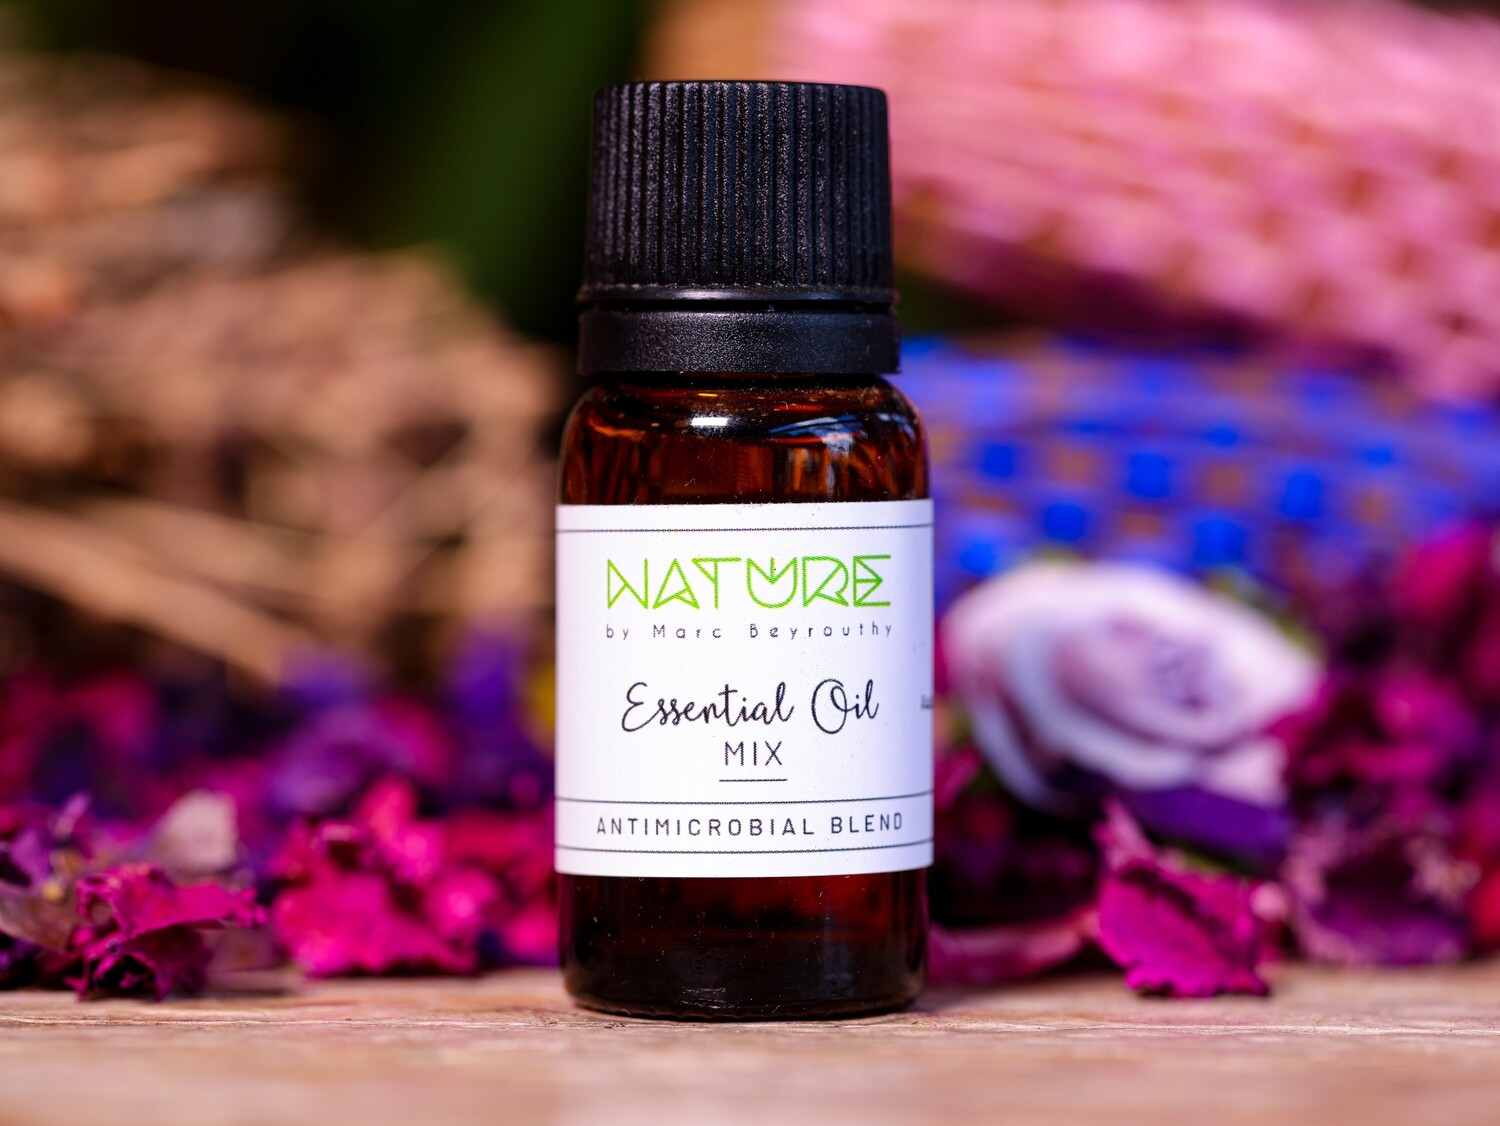 Essential Oil Anti-microbial Blend (Bottle) - Nature by Marc Beyrouthy